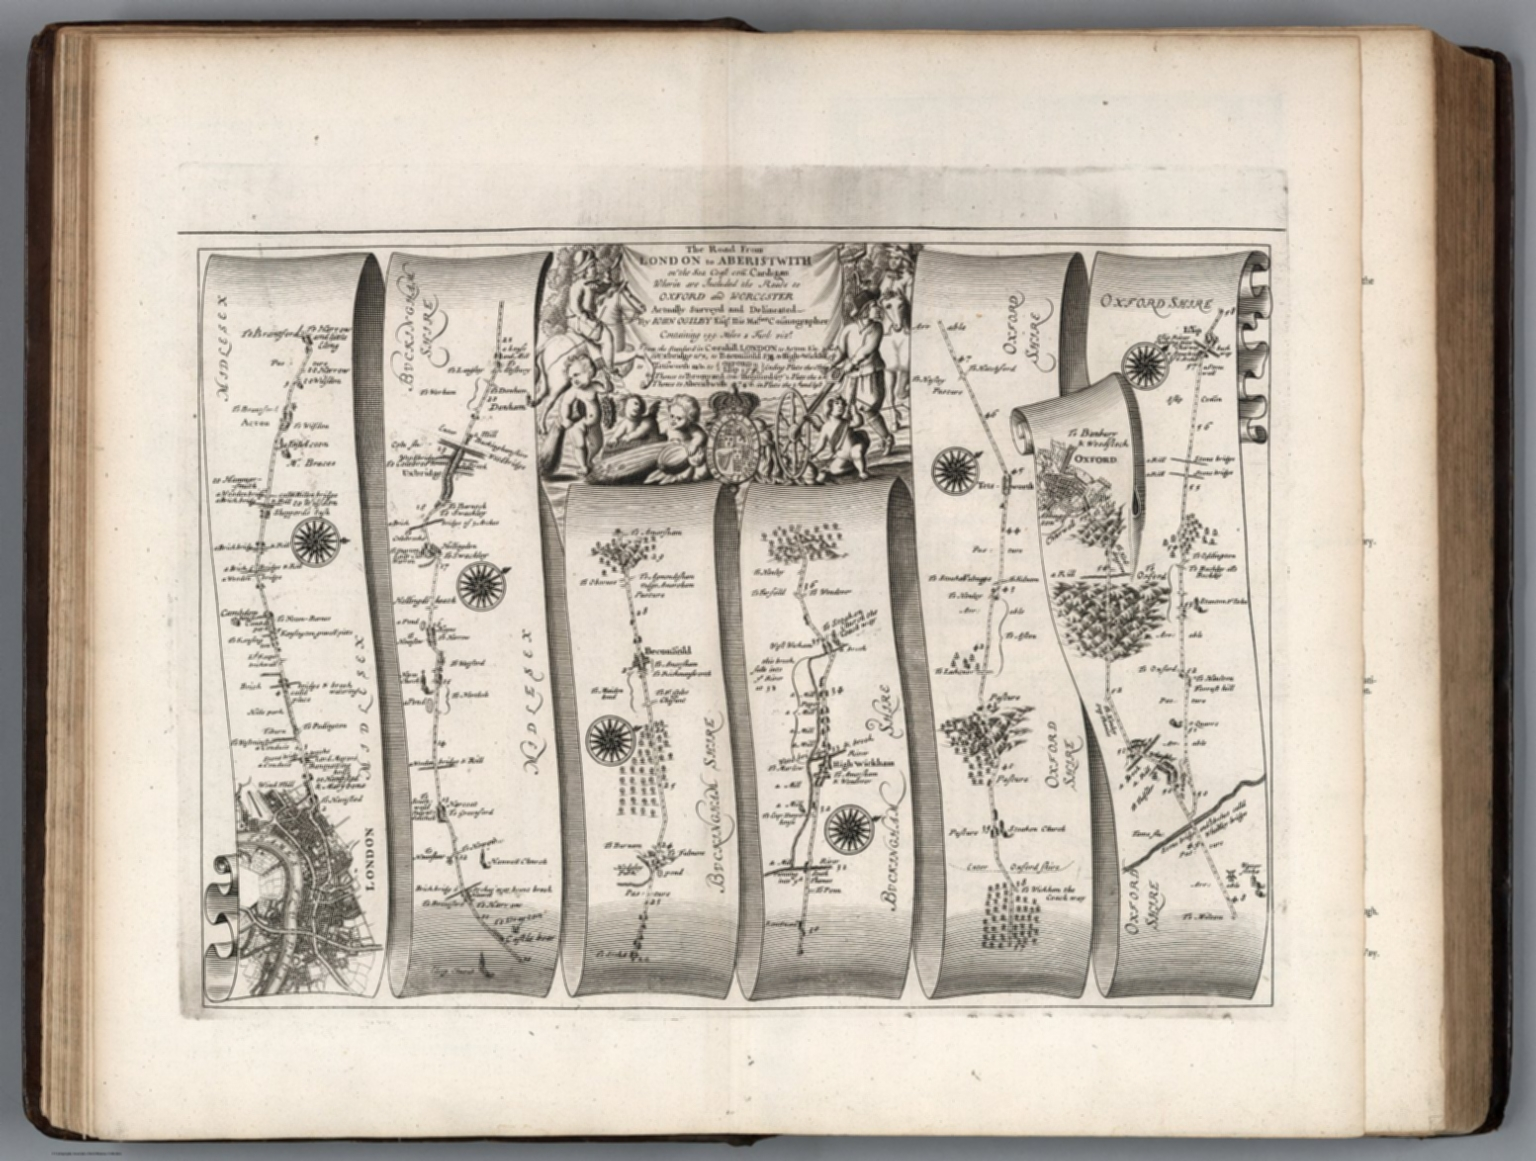 Road from London to Aberistwith. Plate I. London to Islip and Oxford.